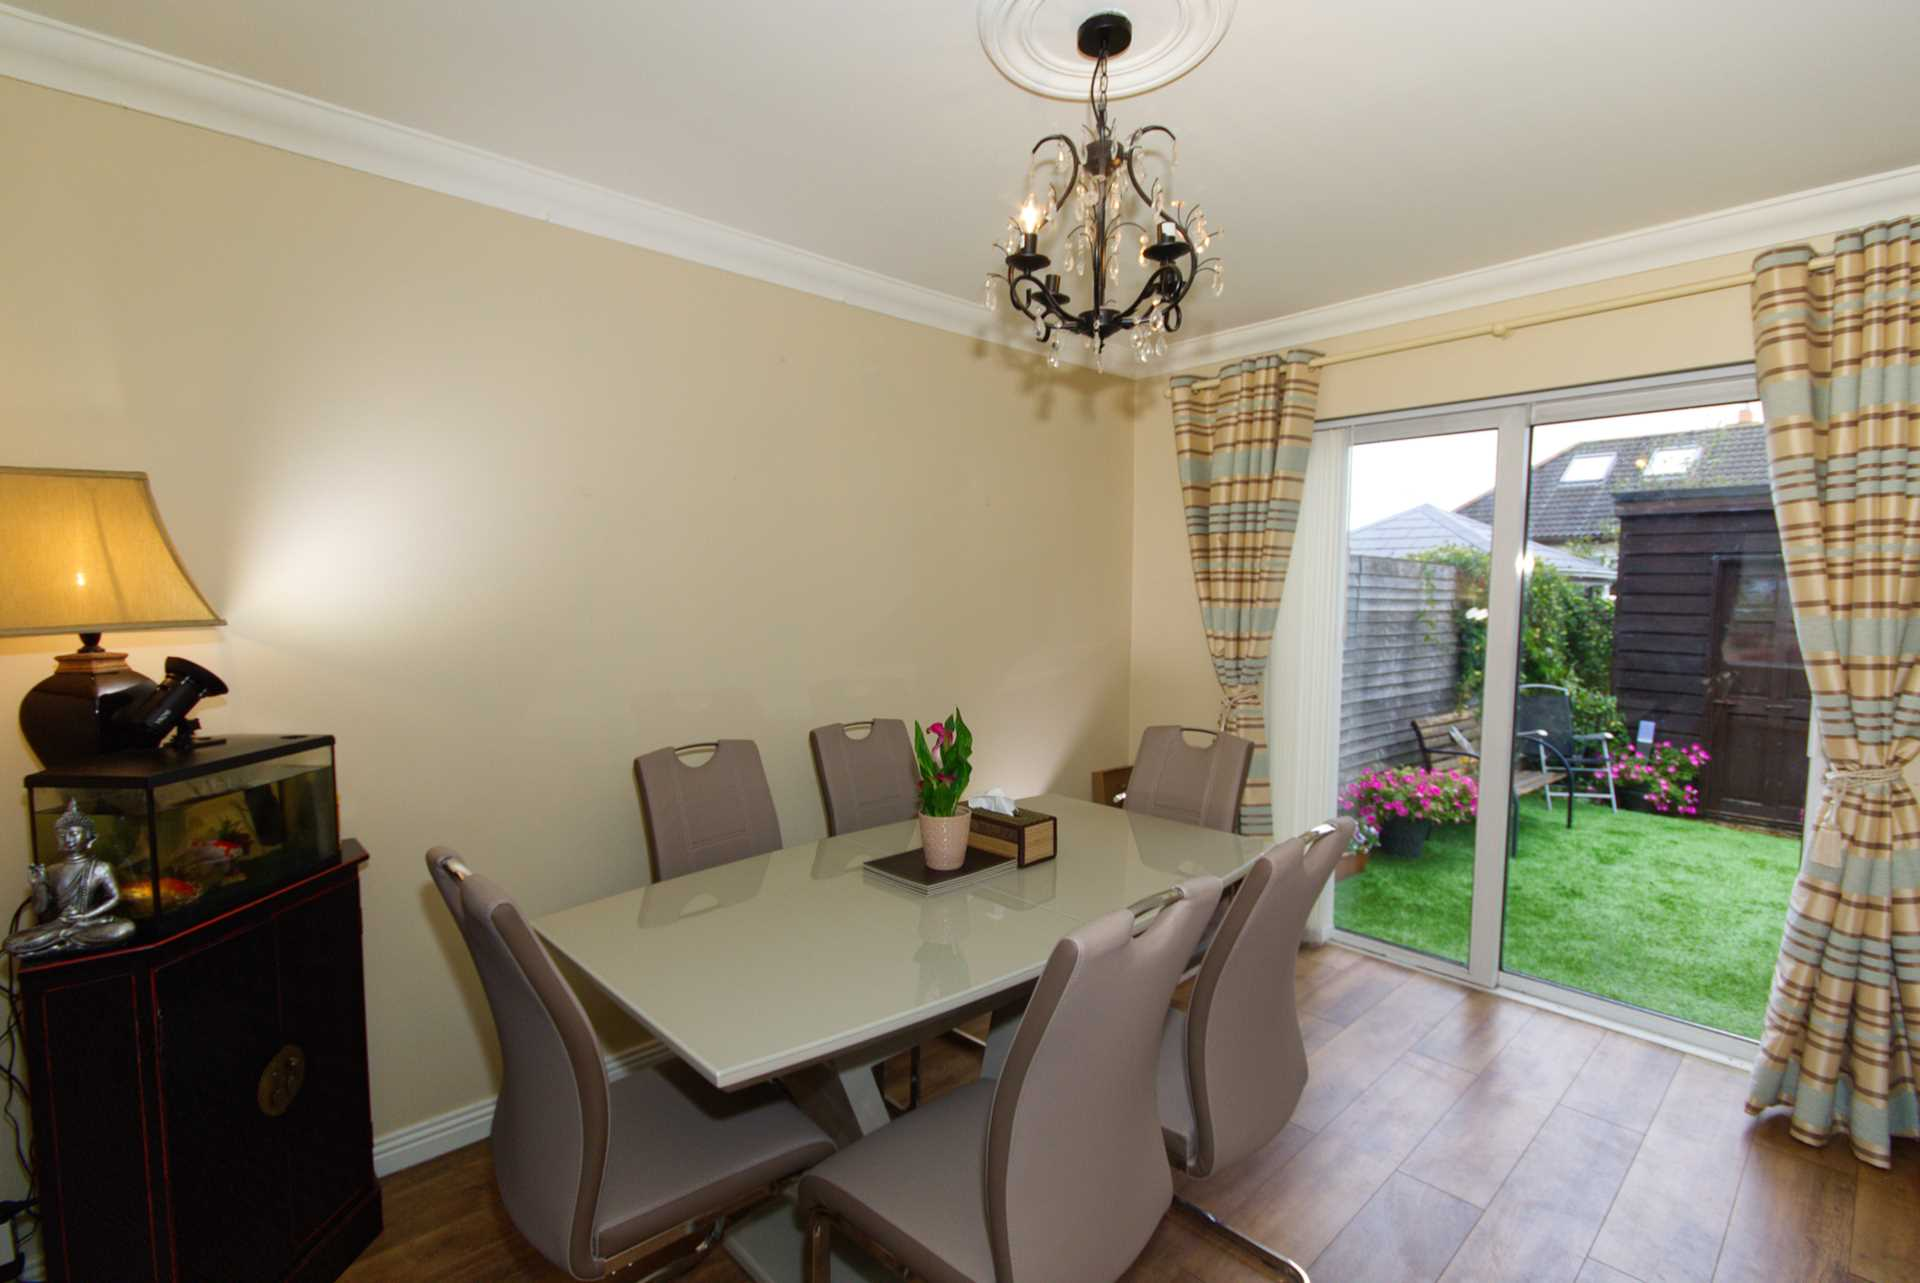 7 Ellensborough Park, Tallaght, Dublin 24, Image 6